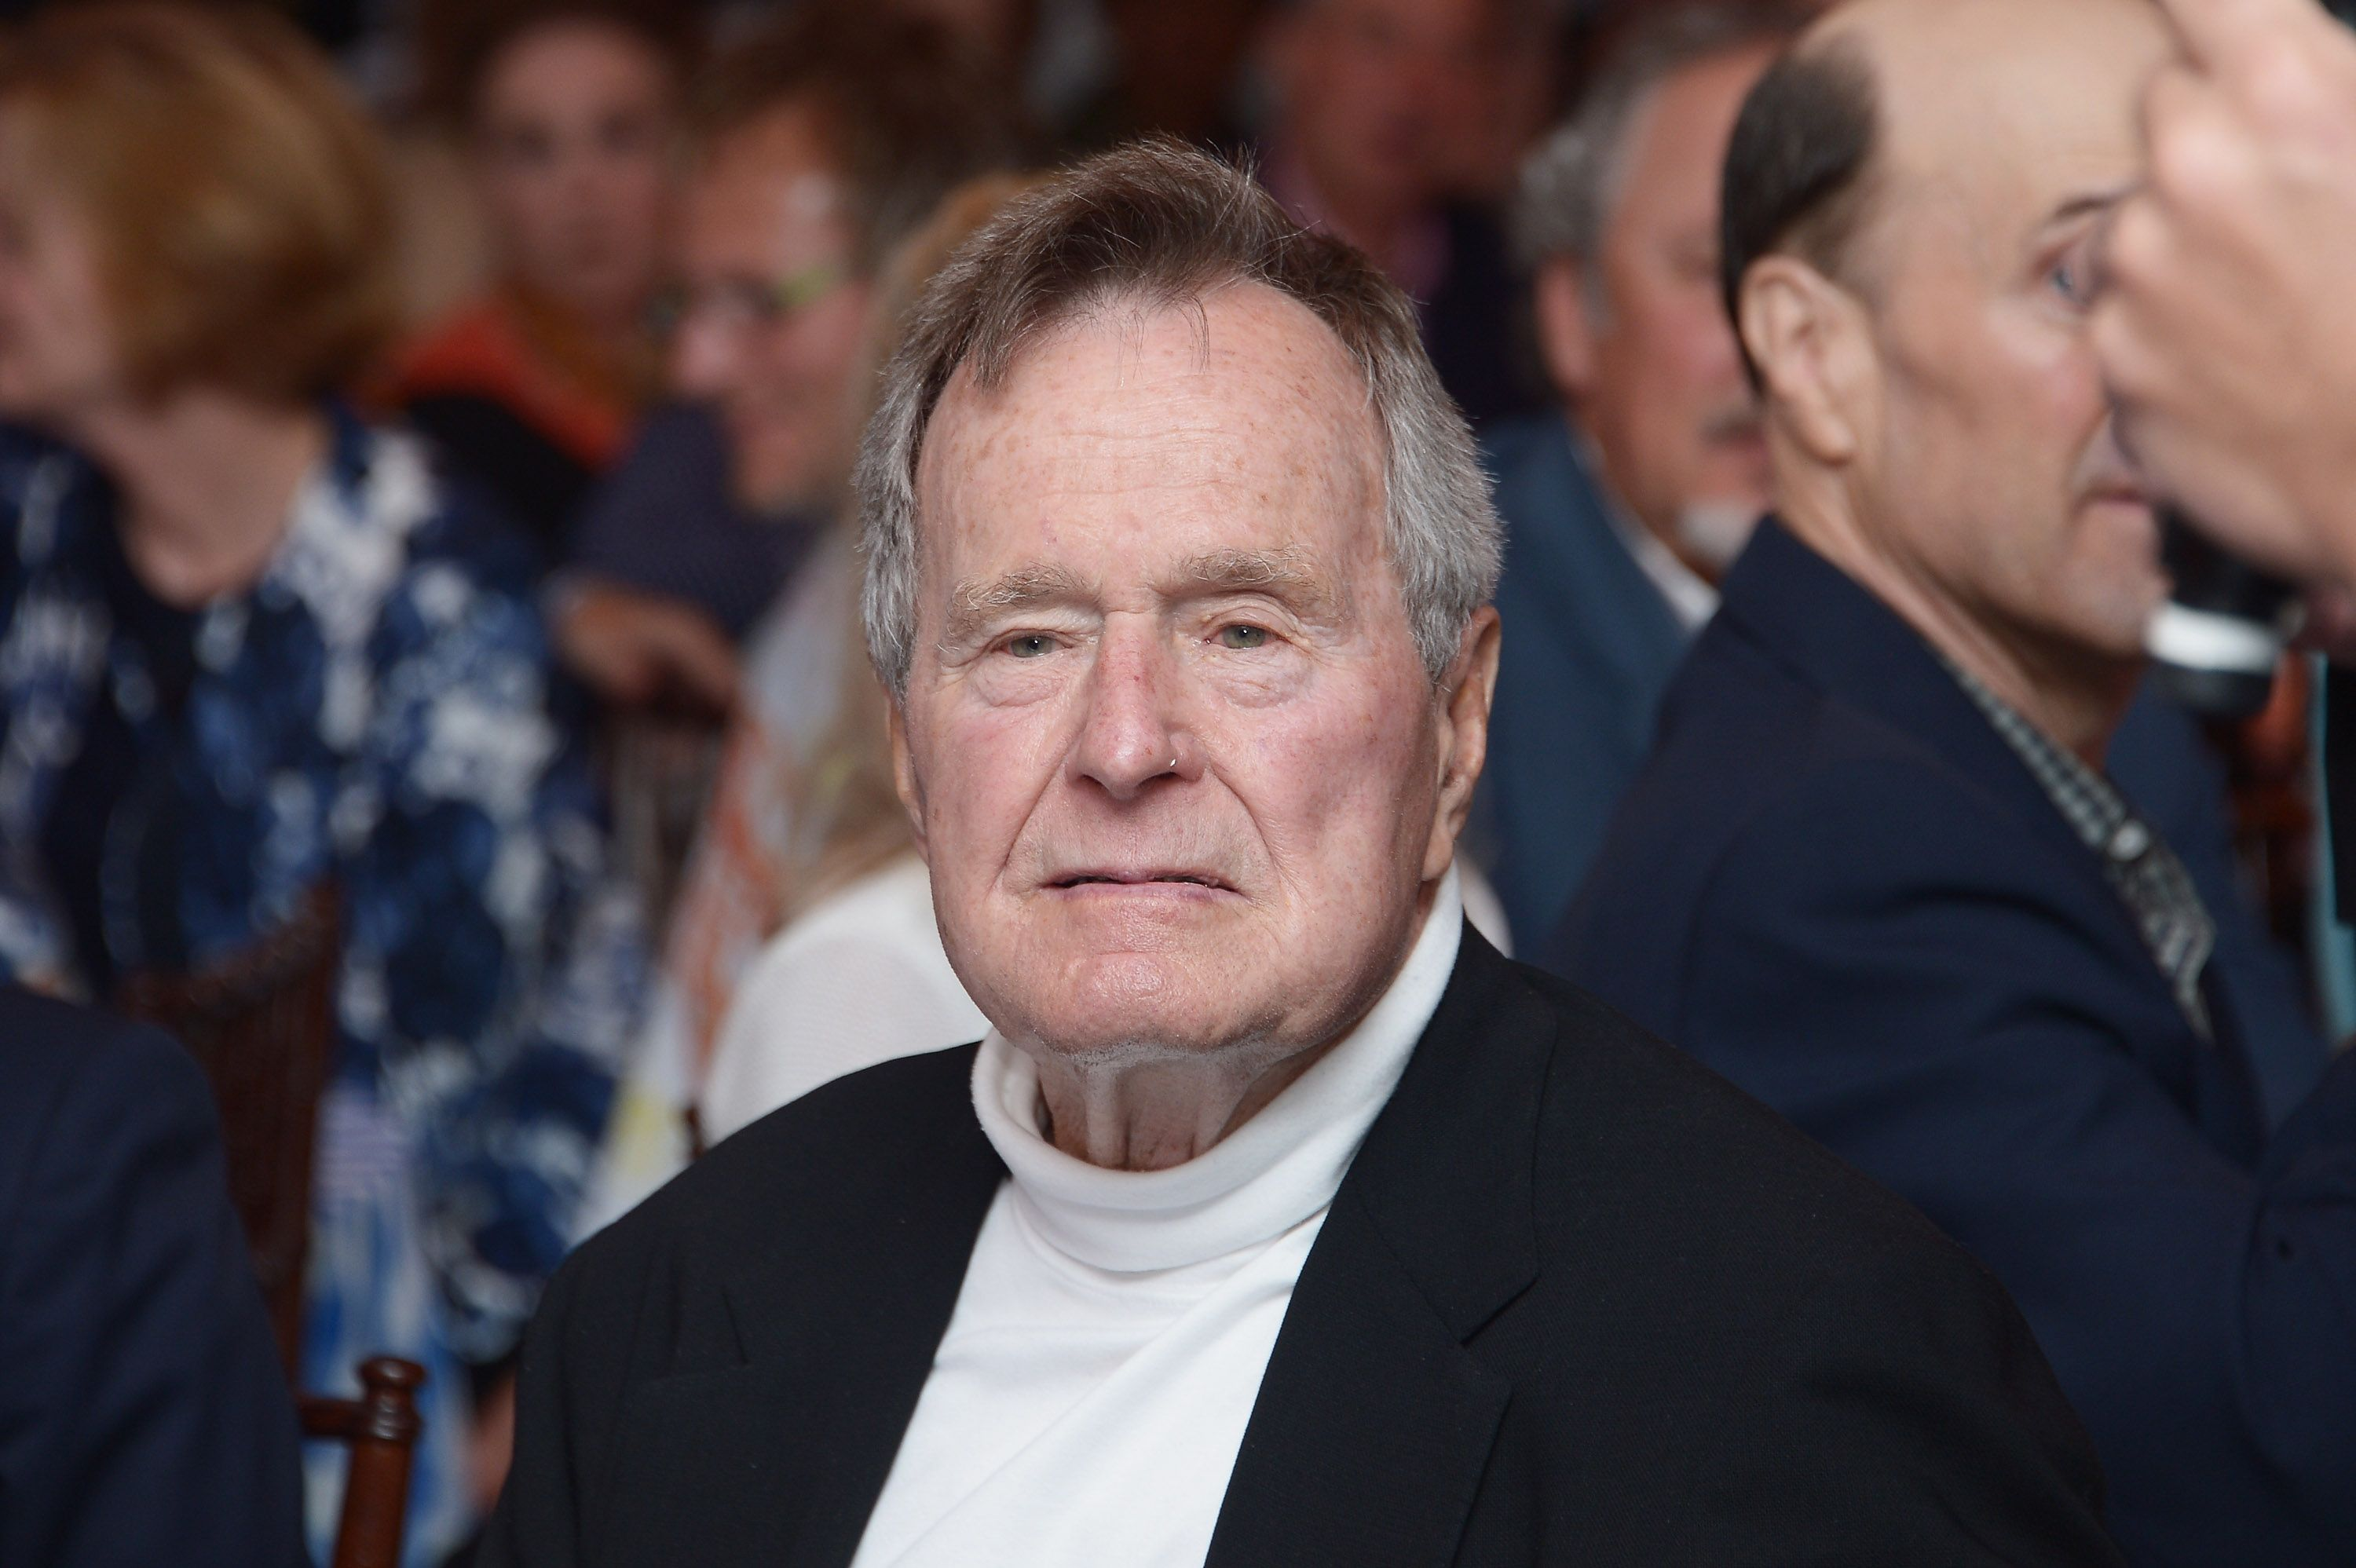 """Former President George H.W. Bush celebrates his 88th birthday following the HBO documentary special screening of """"41"""" on June 12, 2012, in Kennebunkport, Maine   Photo: Michael Loccisano/Getty Images"""